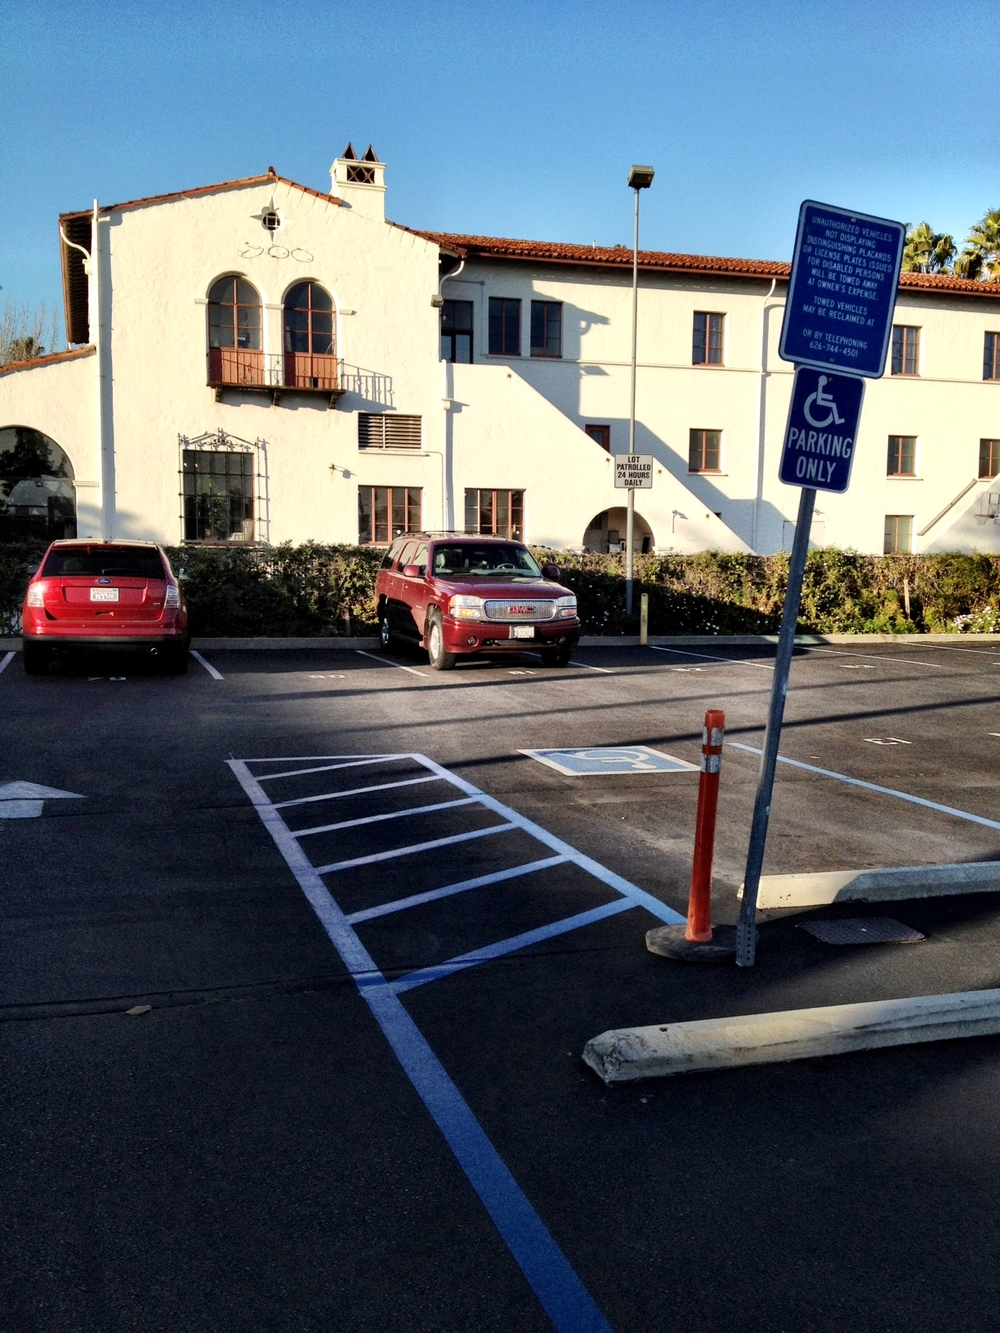 The ticket expired one hour ago for our car in this parking lot. But it was alright; we spent an hour in Vroman's Bookstore in Pasadena. I first went to Vroman's 44 years ago when I started teaching in Pasadena.